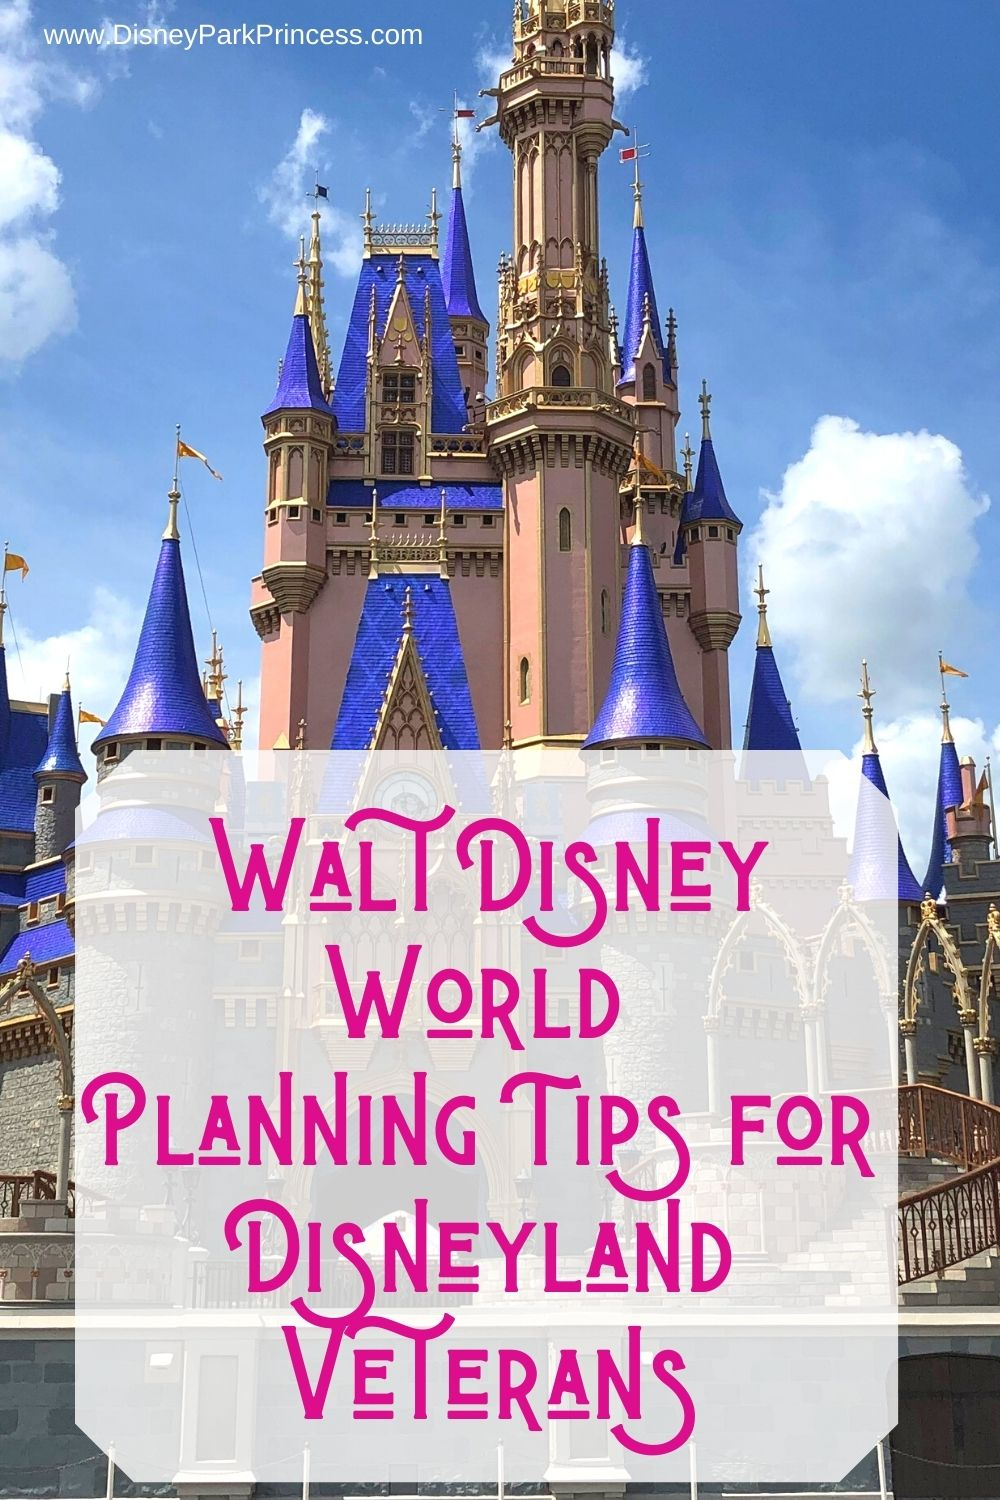 If you're familiar with Disneyland but are planning your first visit to Walt Disney World, these are the planning tips for you! #waltdisneyworld #disney #planning